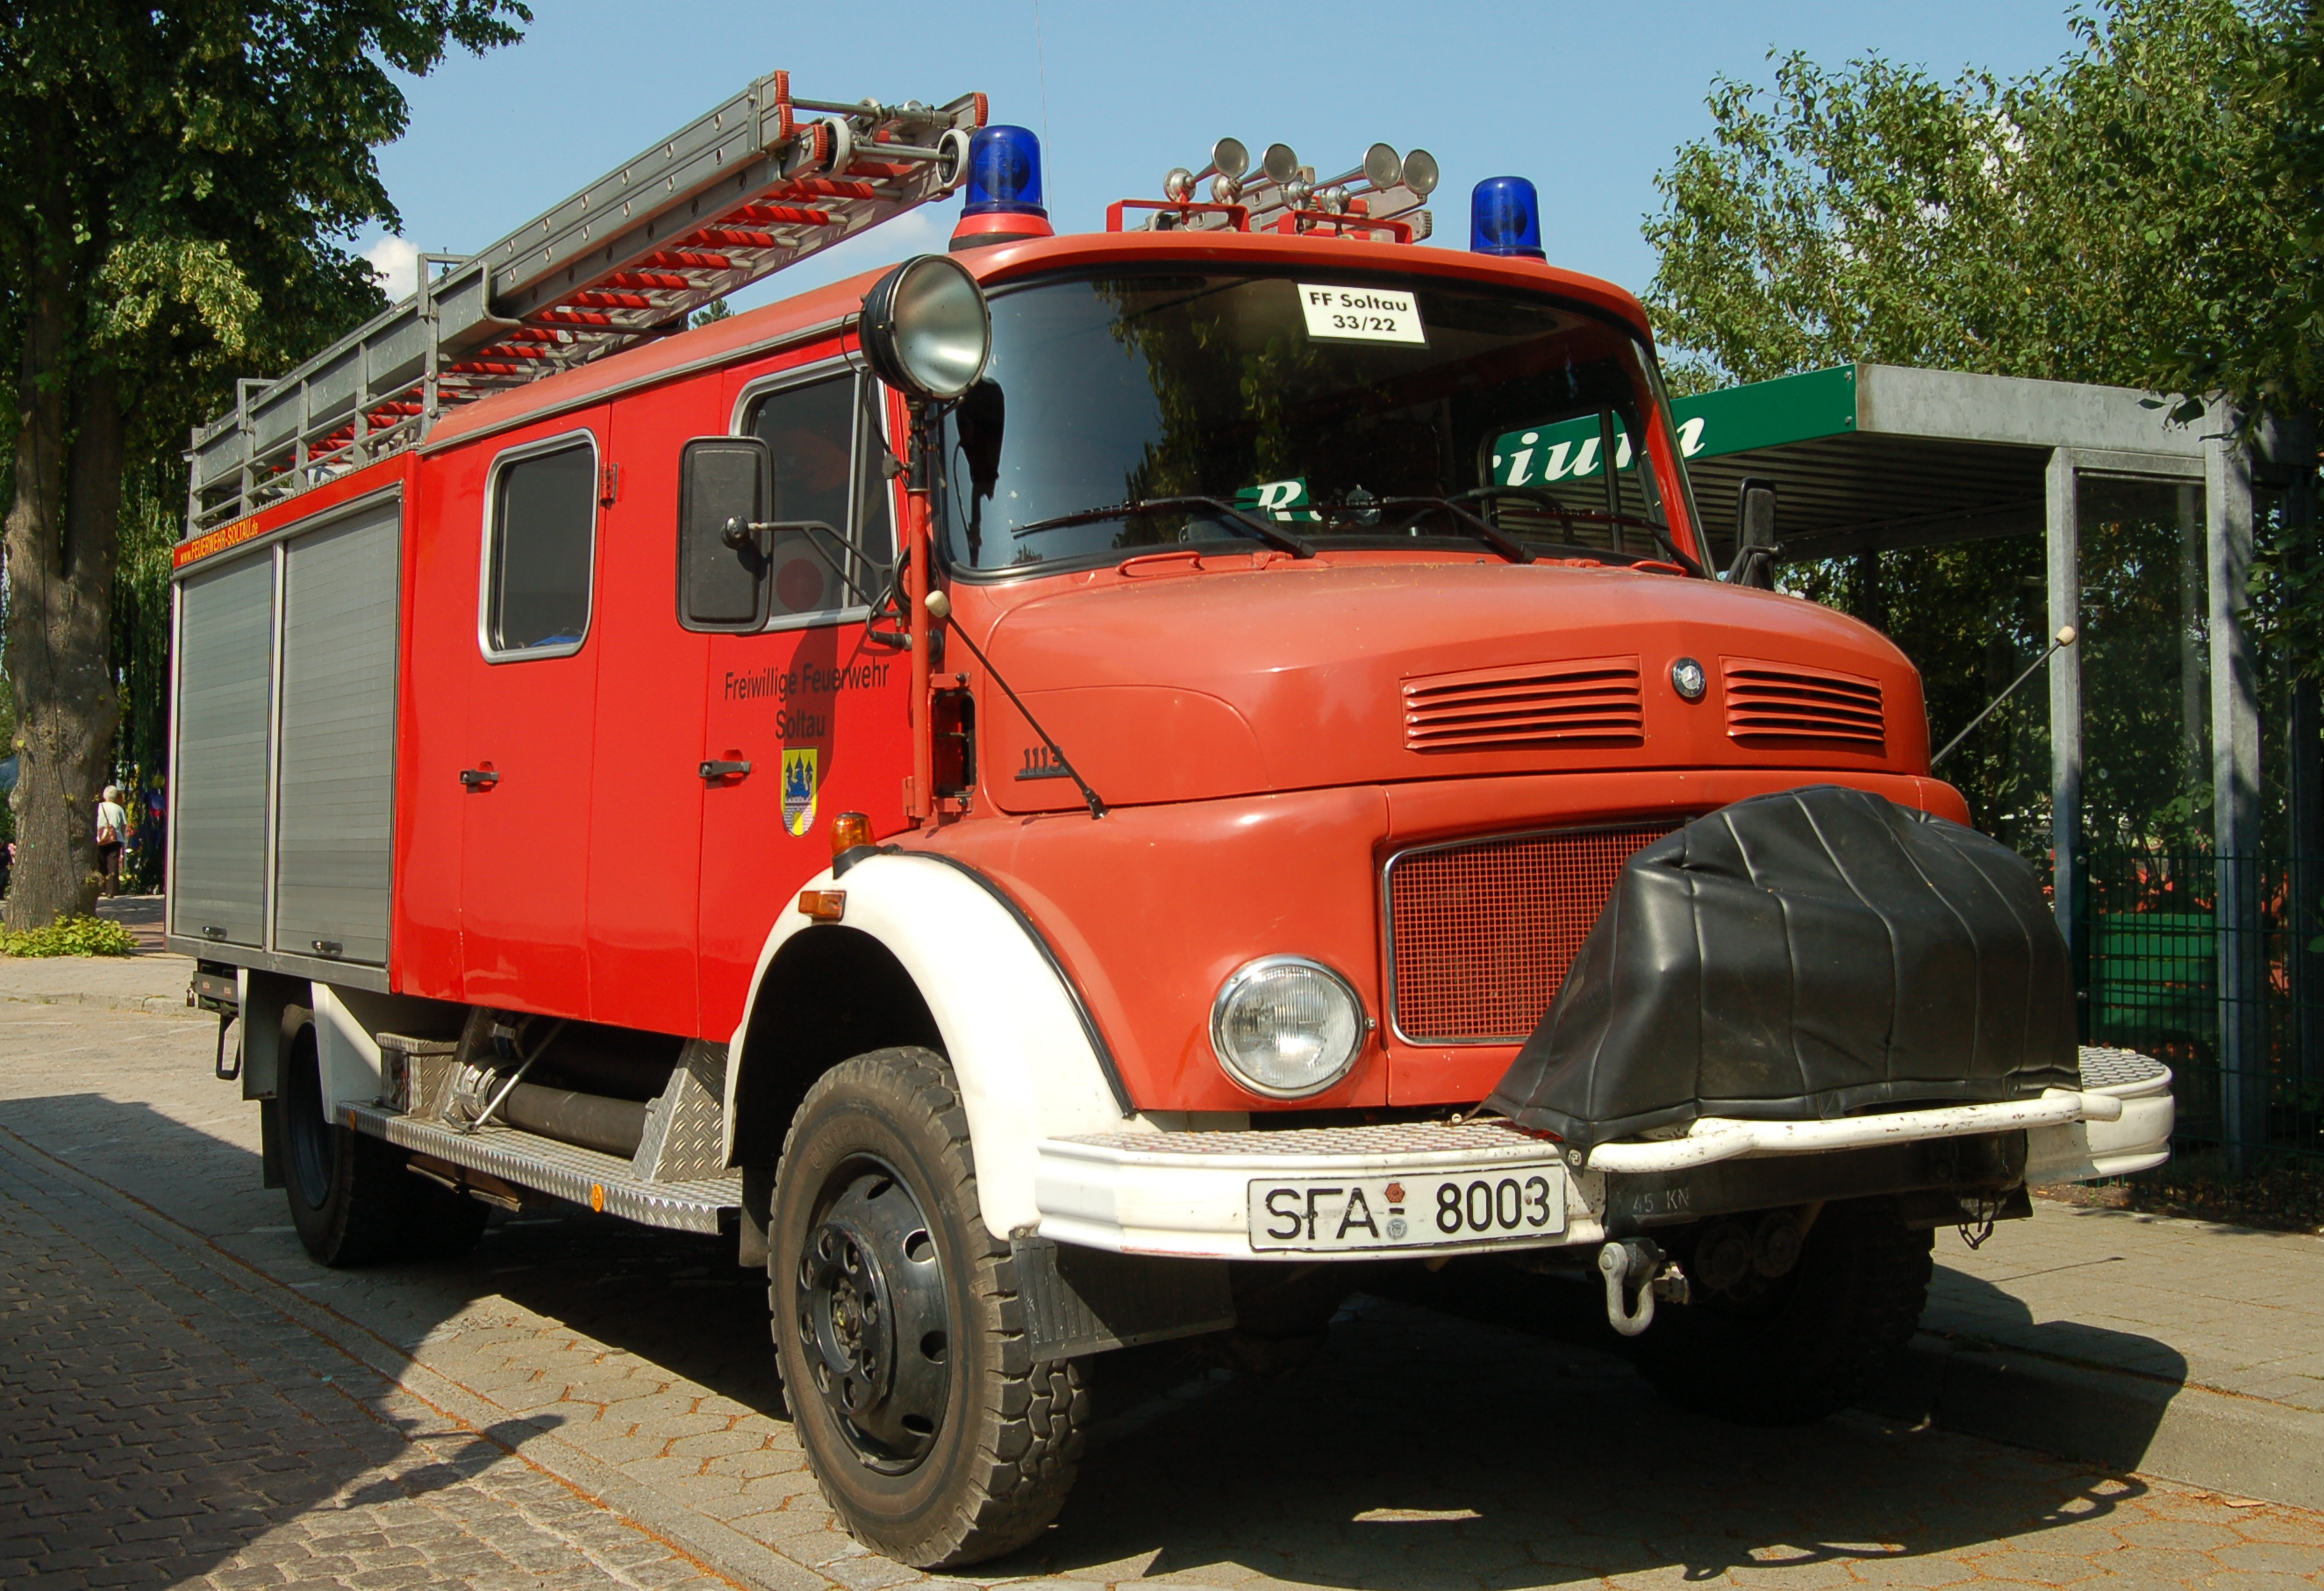 File:Mercedes-Benz LAF 1193 1985.jpg